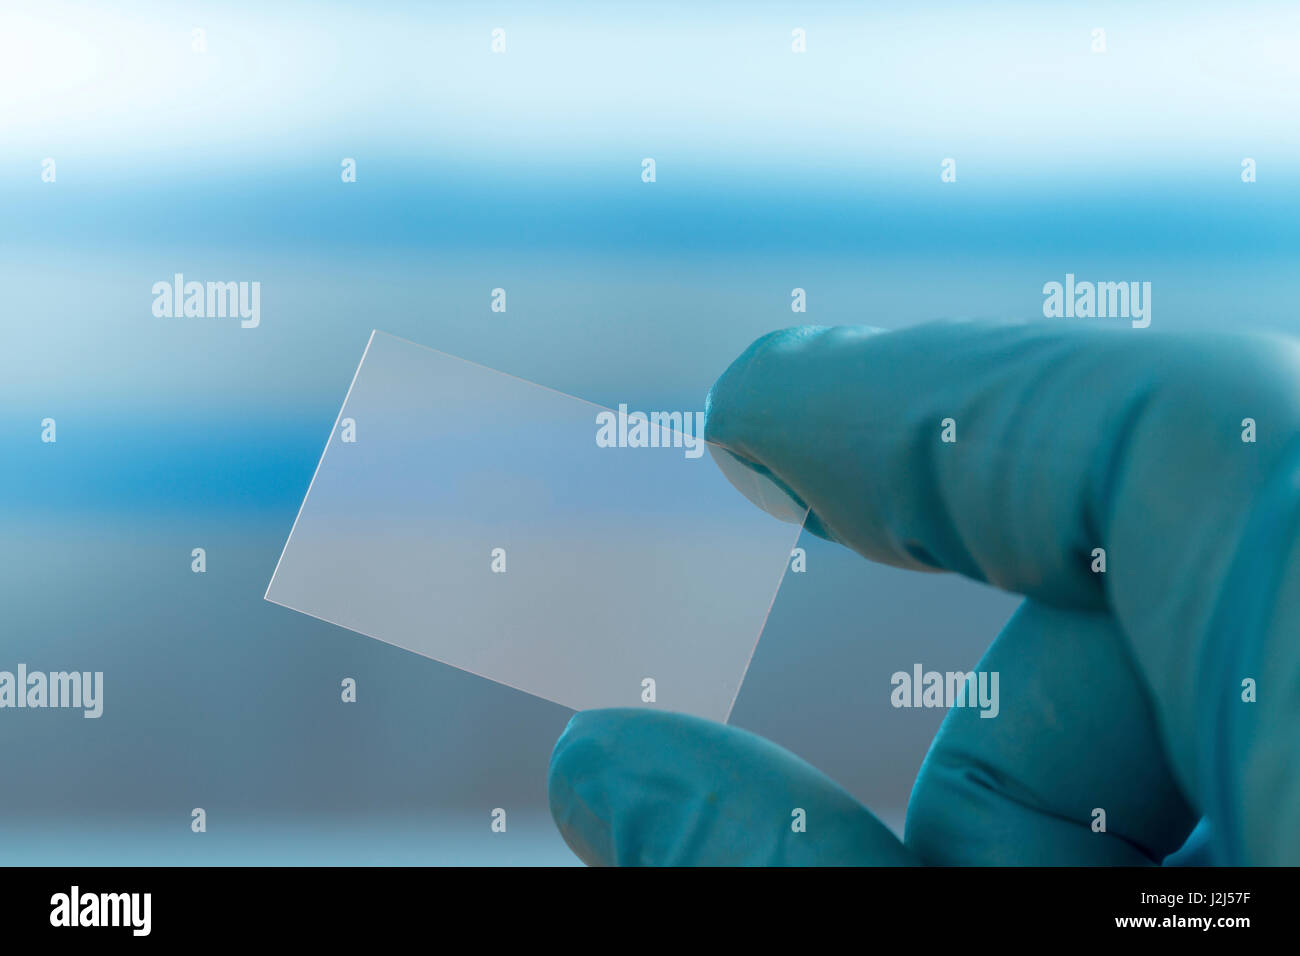 Person holding microscope slide. - Stock Image